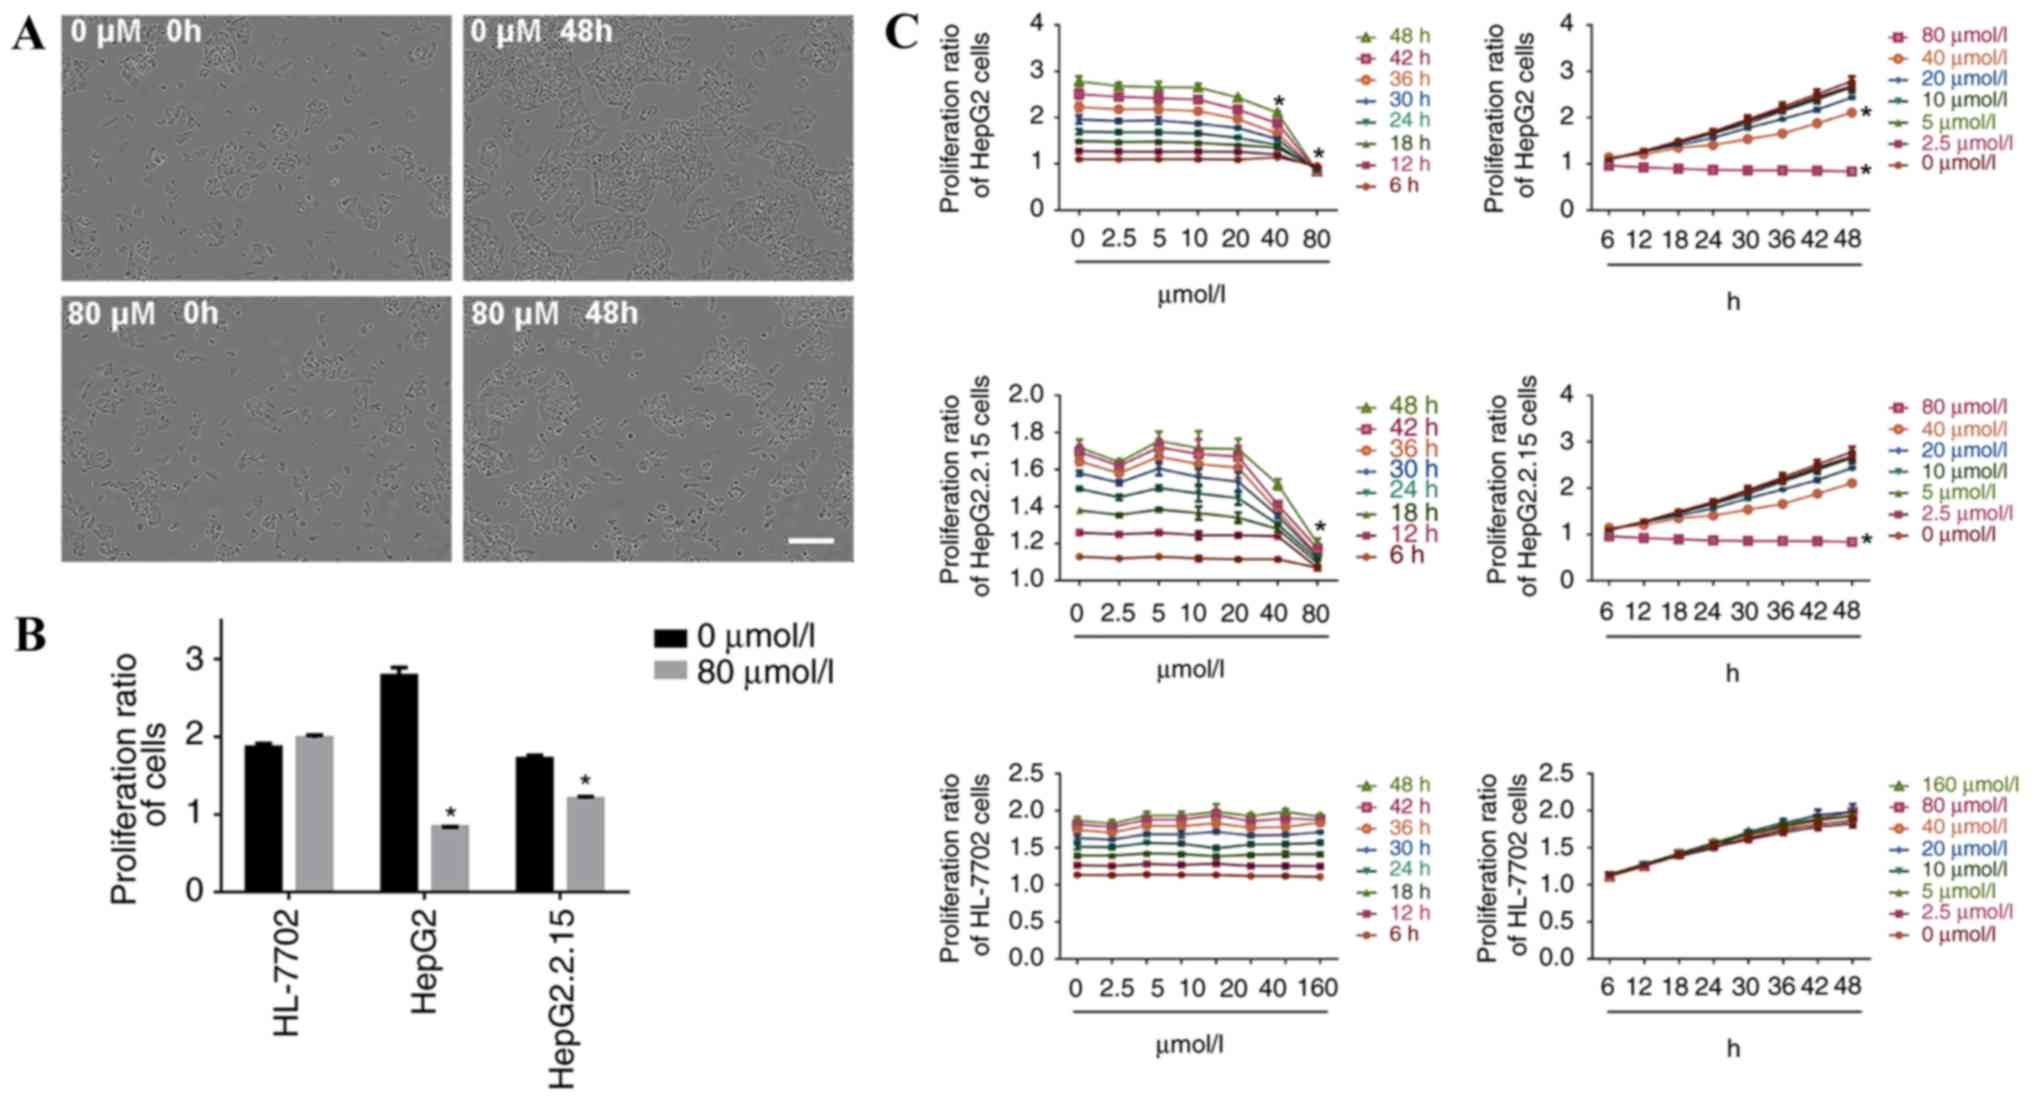 Propranolol Suppresses The Proliferation And Induces Apoptosis Figure1 Cell Phone Jammer Circuit Diagram Figure 1 Hydrochloride Treatment Inhibits Of Hepg2 Hepg2215 Cells A Following 48 H Incubation With 80 Mol L